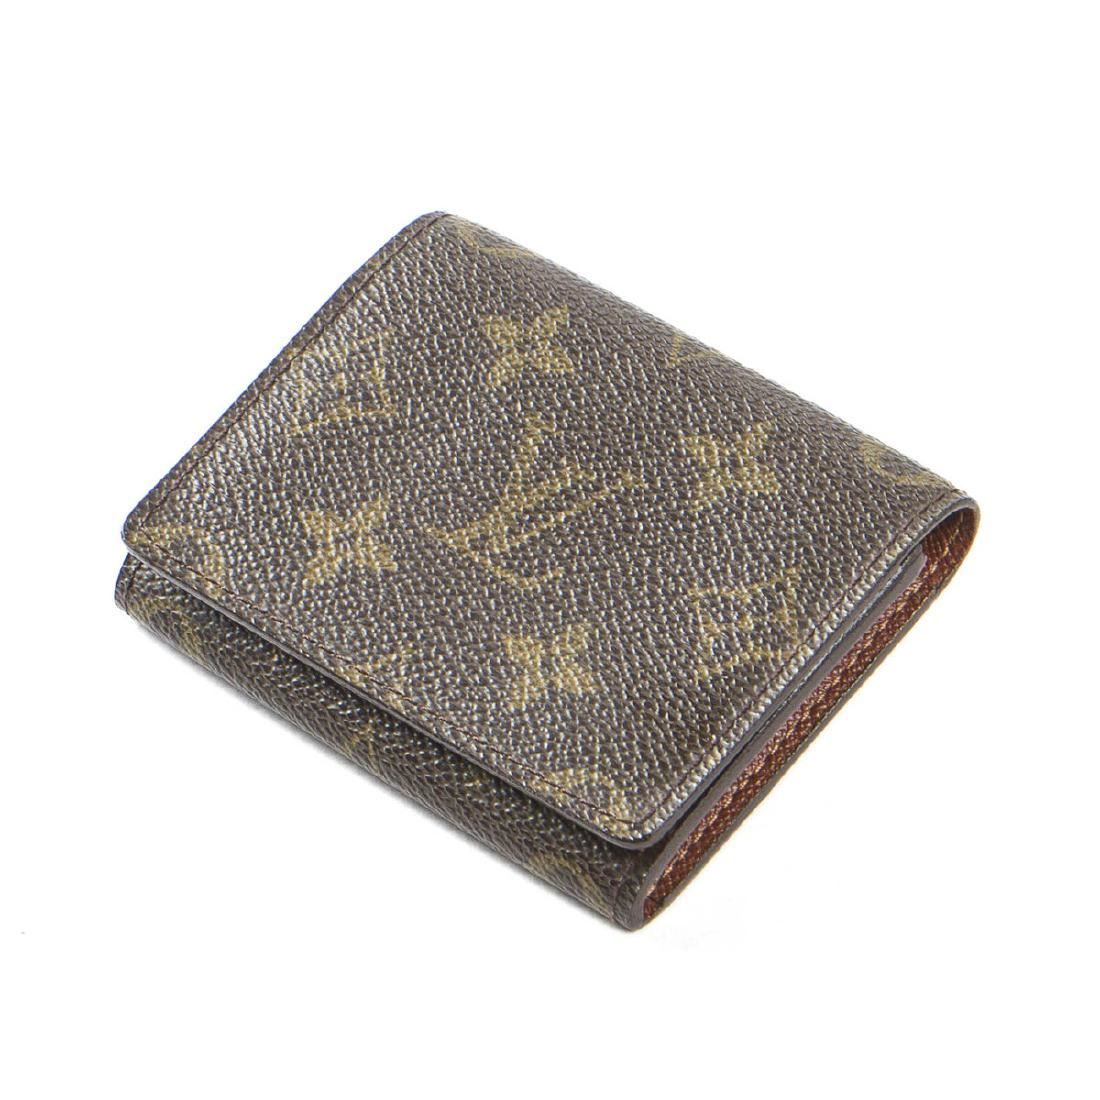 11f313bc1a84 Image 1   Louis Vuitton Business Card Holder in Brown Monogram ...